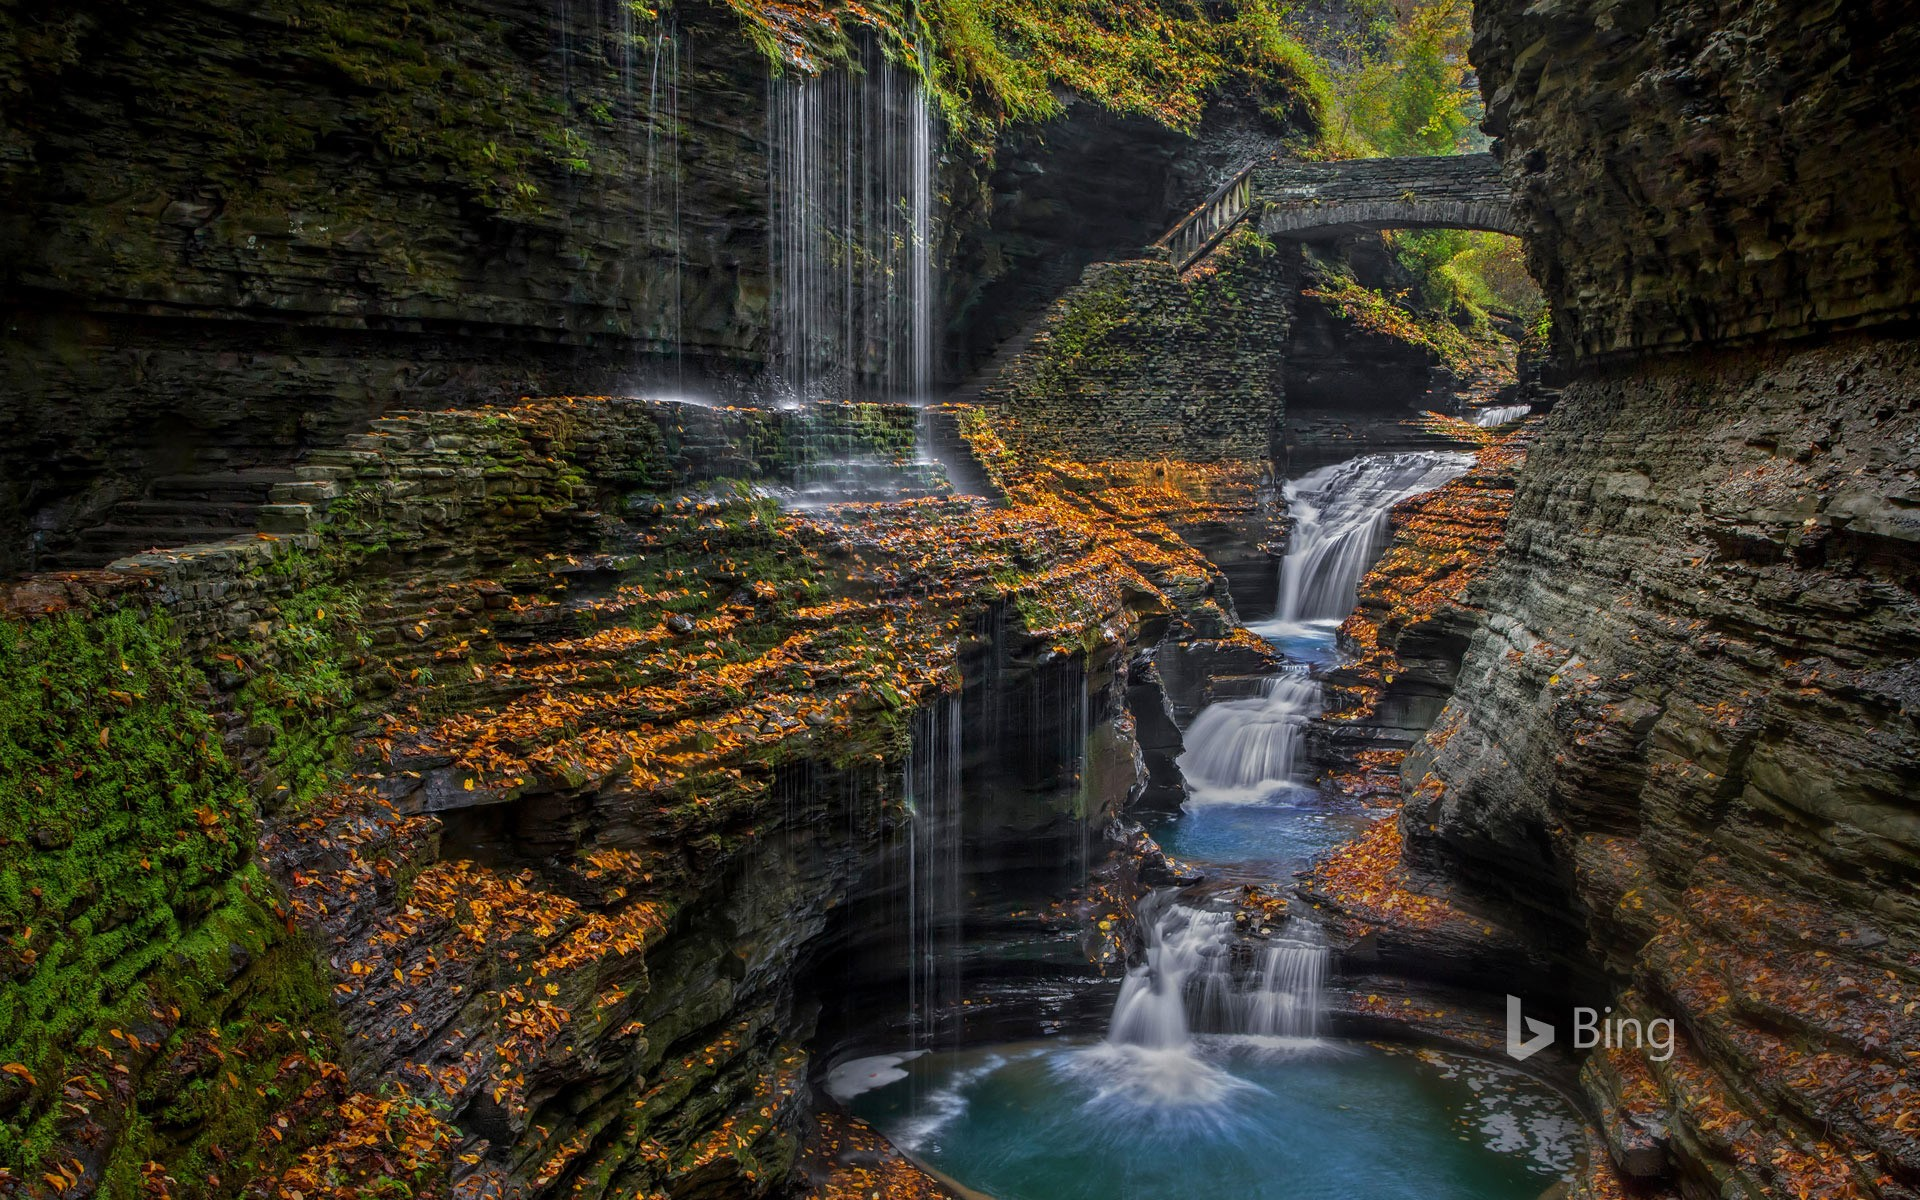 Watkins Glen State Park's Rainbow Falls in the Finger Lakes region of upstate New York